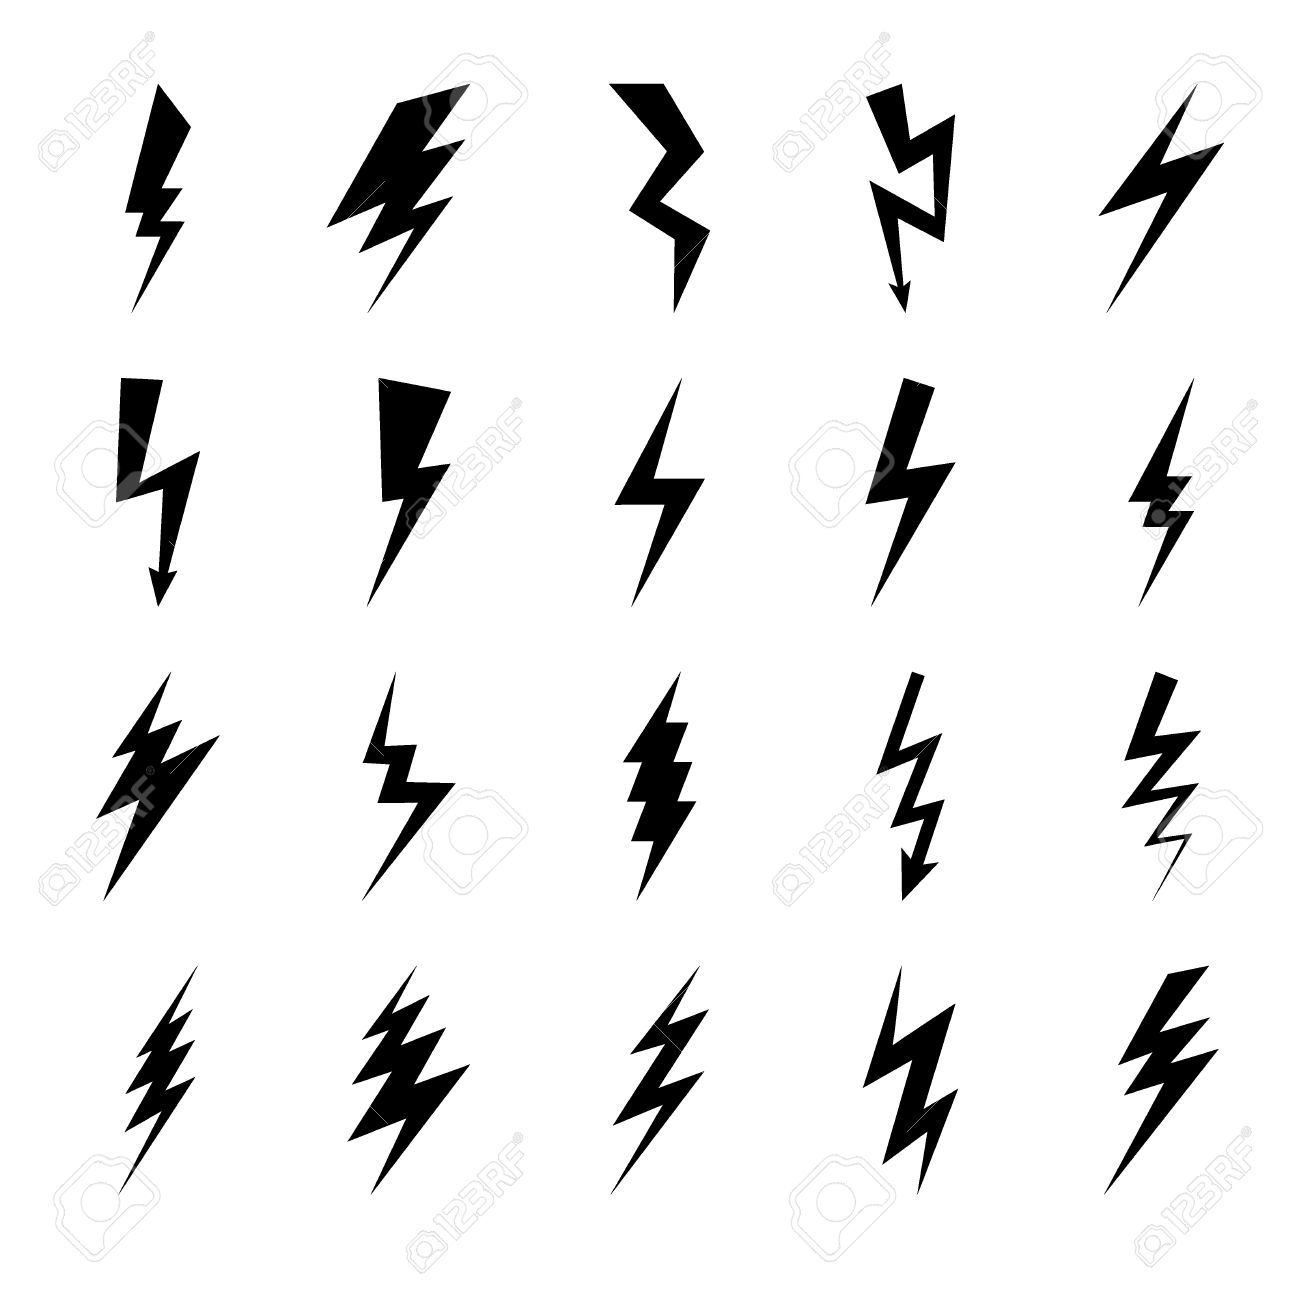 lightning bolt icons black thunder lightings on white background royalty free cliparts vectors and stock illustration image 51746632 lightning bolt icons black thunder lightings on white background